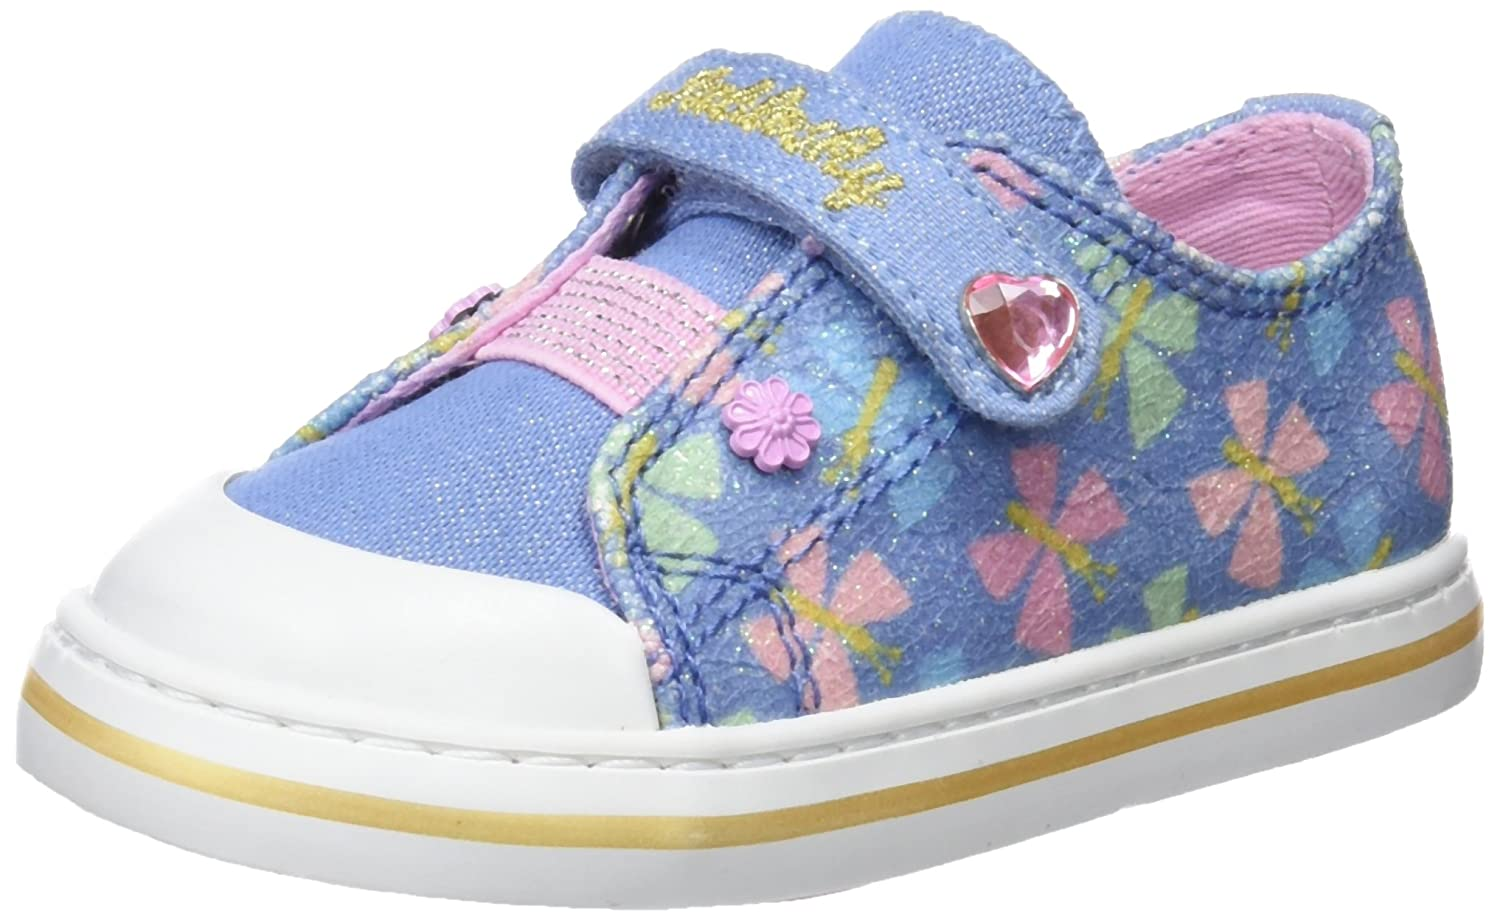 Pablosky 947740, Sneakers Basses Fille